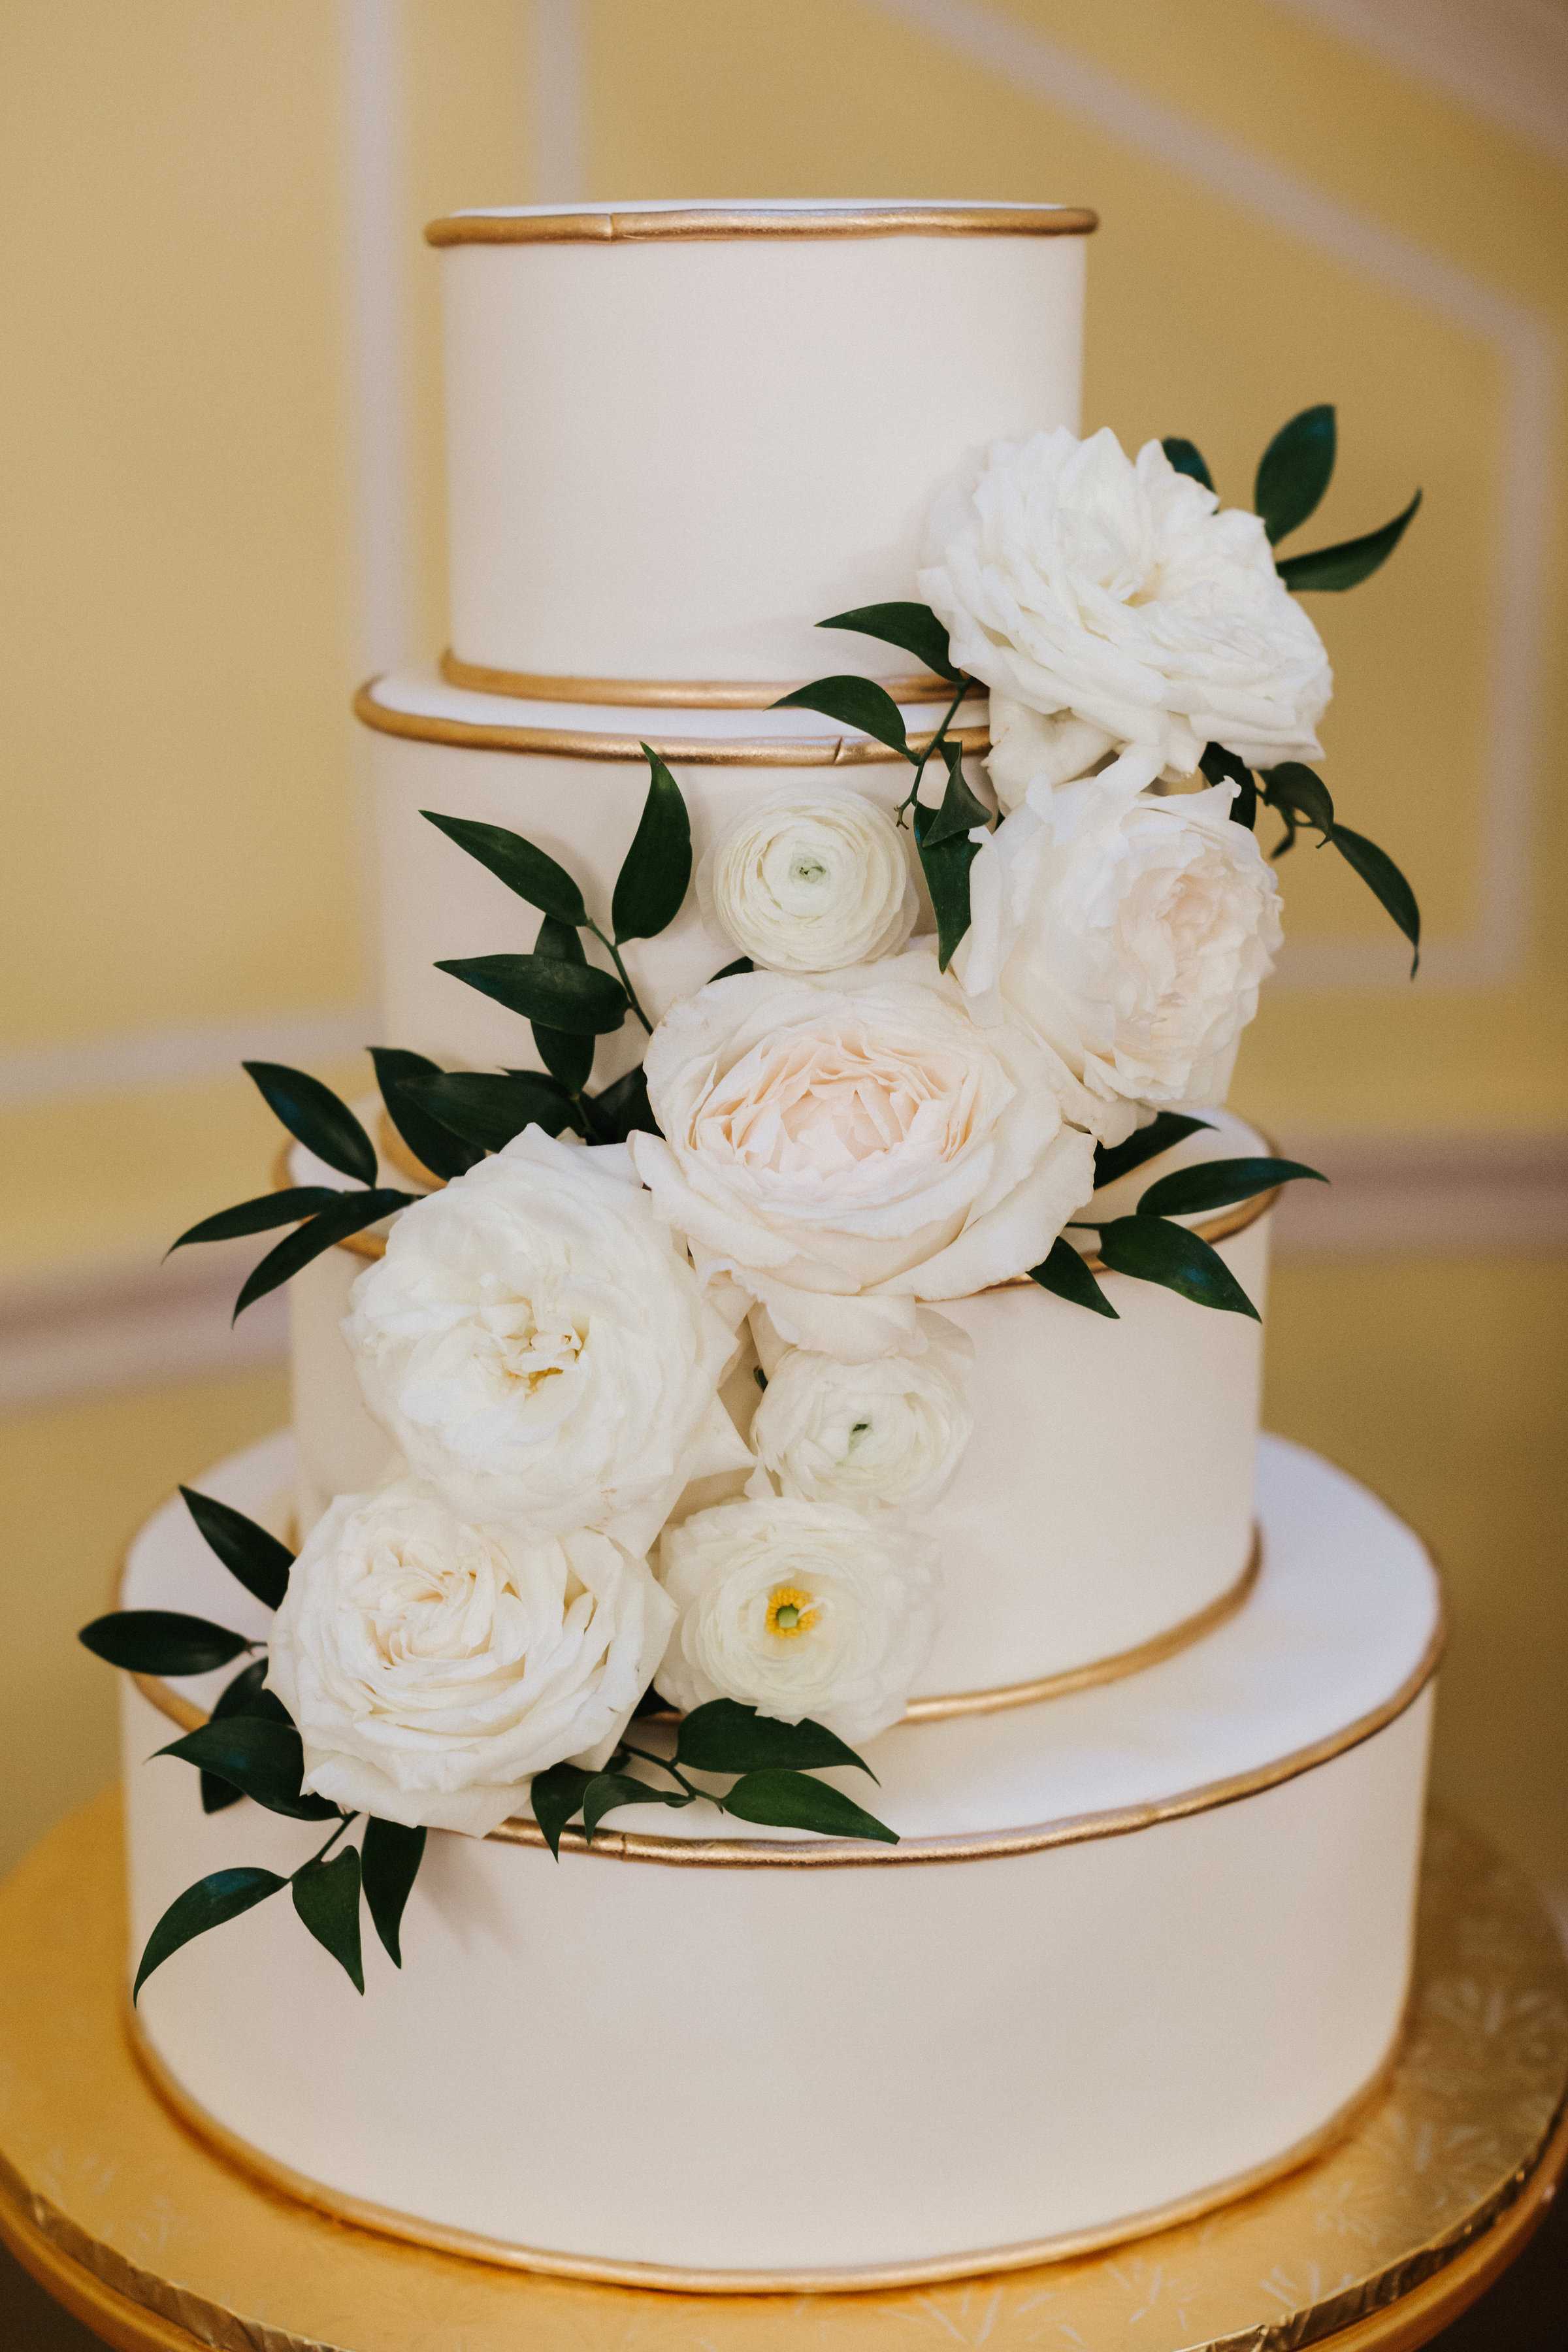 Photo by Monika Gauthier // Cake by PPHG